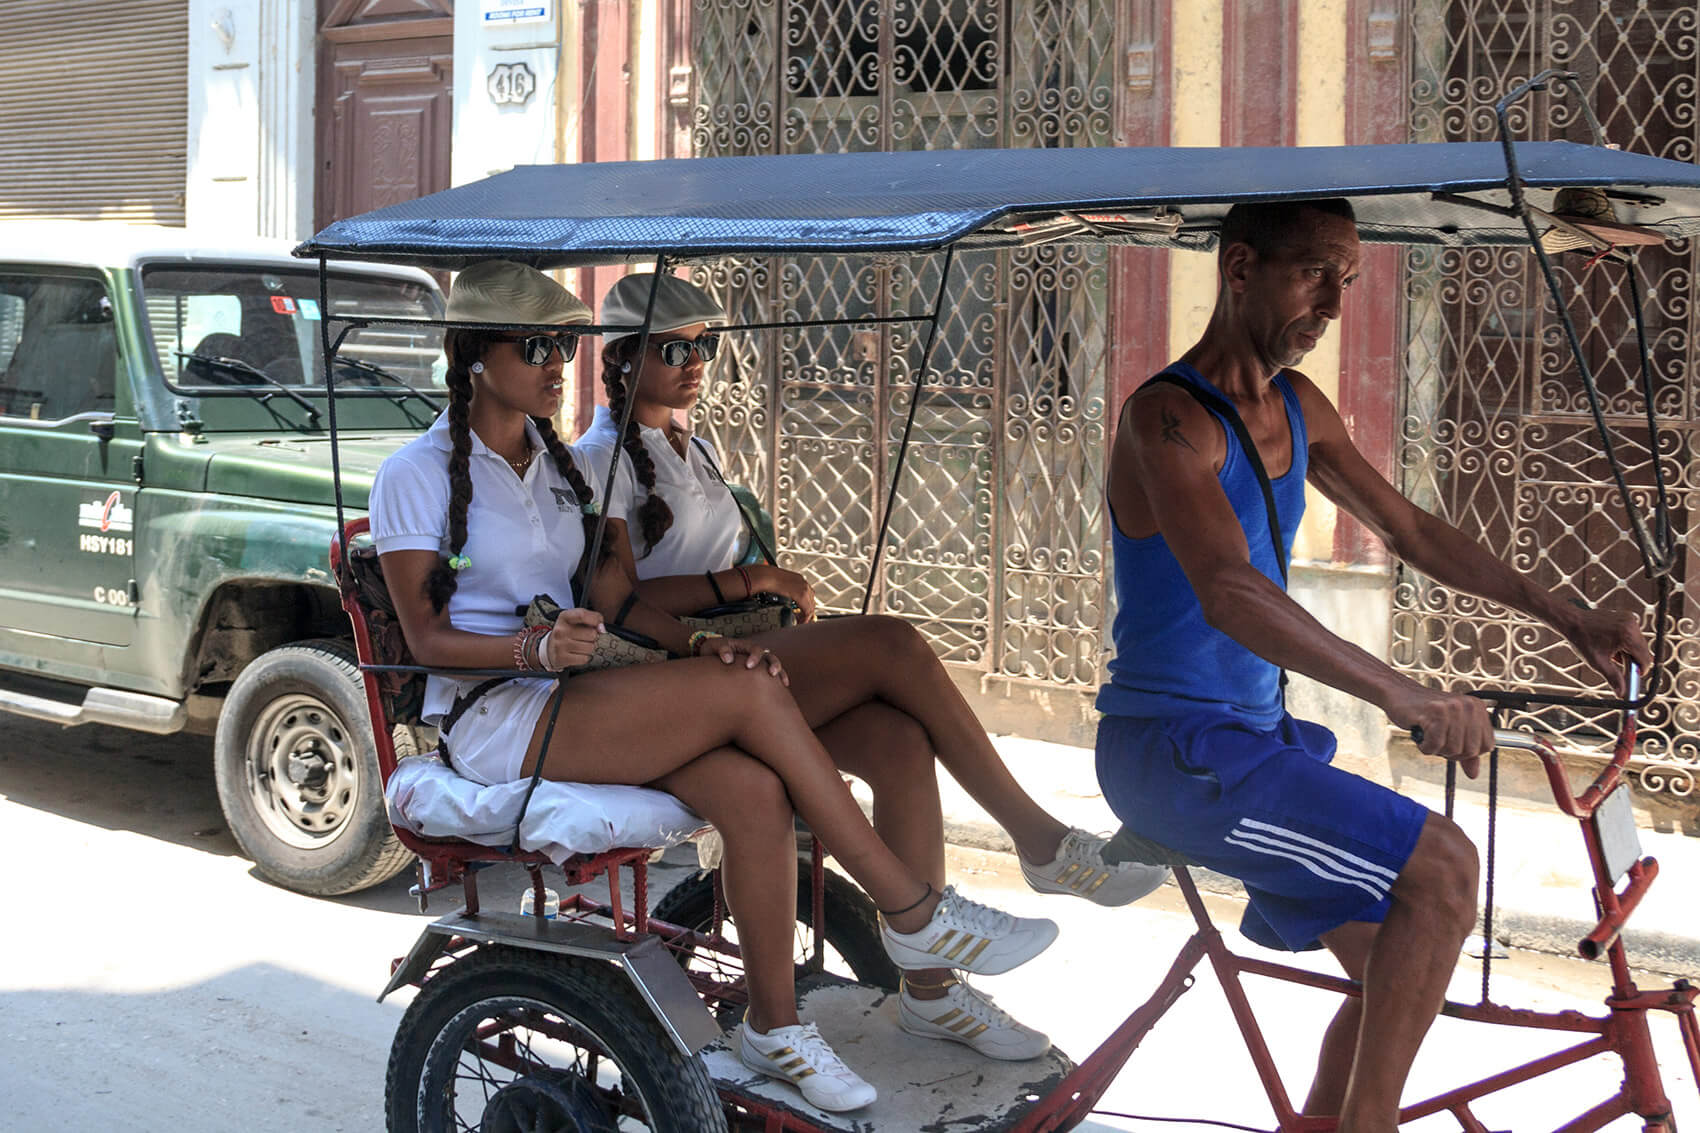 Two twin girls on a cycle taxi in Havana.